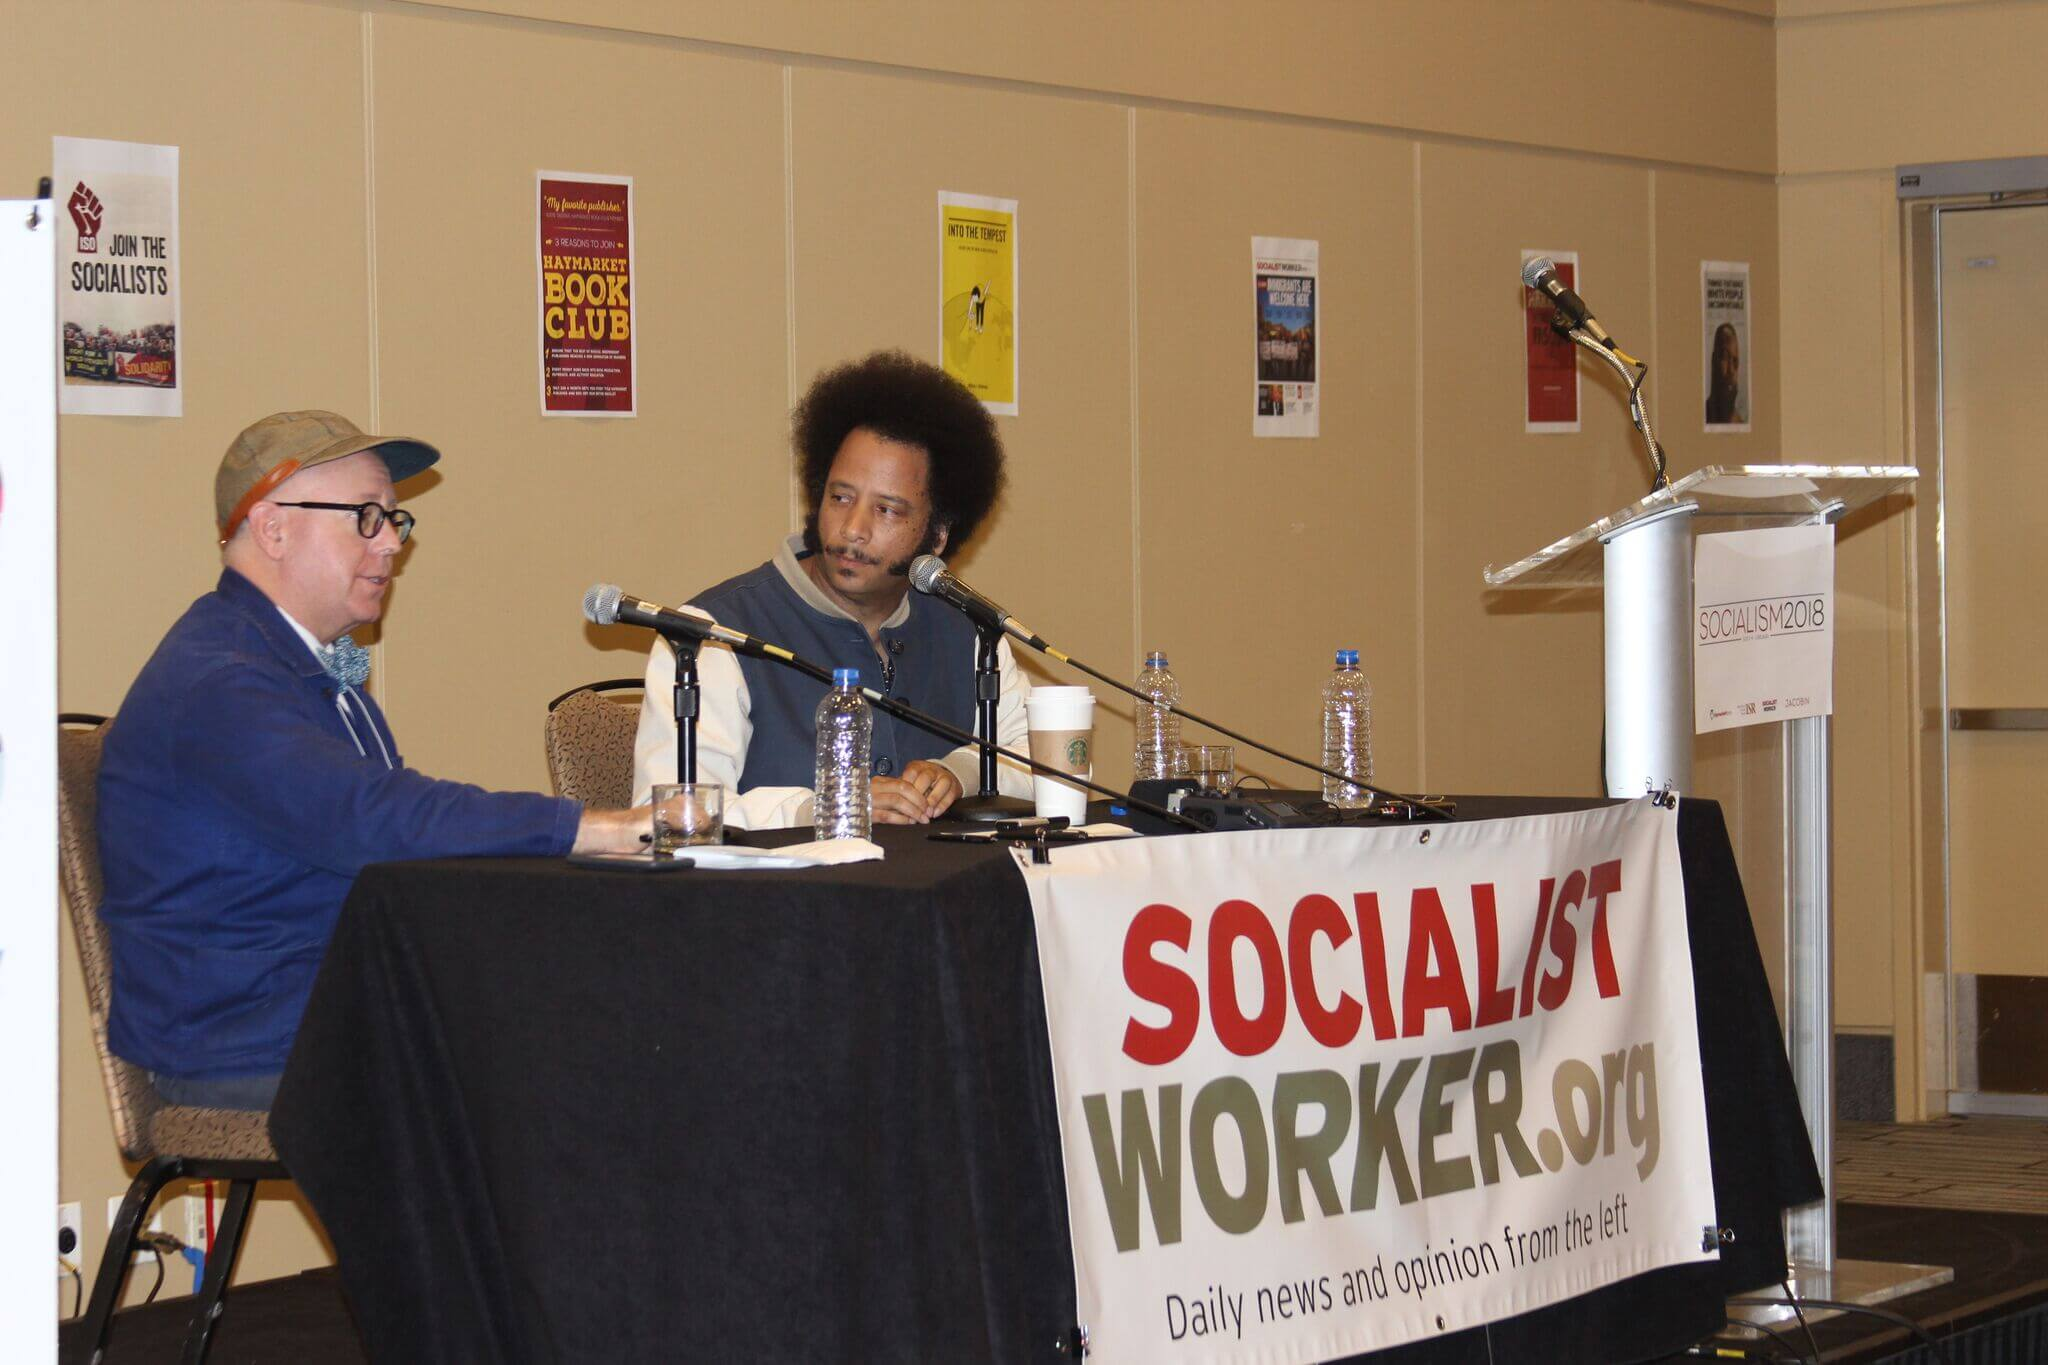 Socialism Conference 2019 - July 4-7, Chicago - Socialism 2019